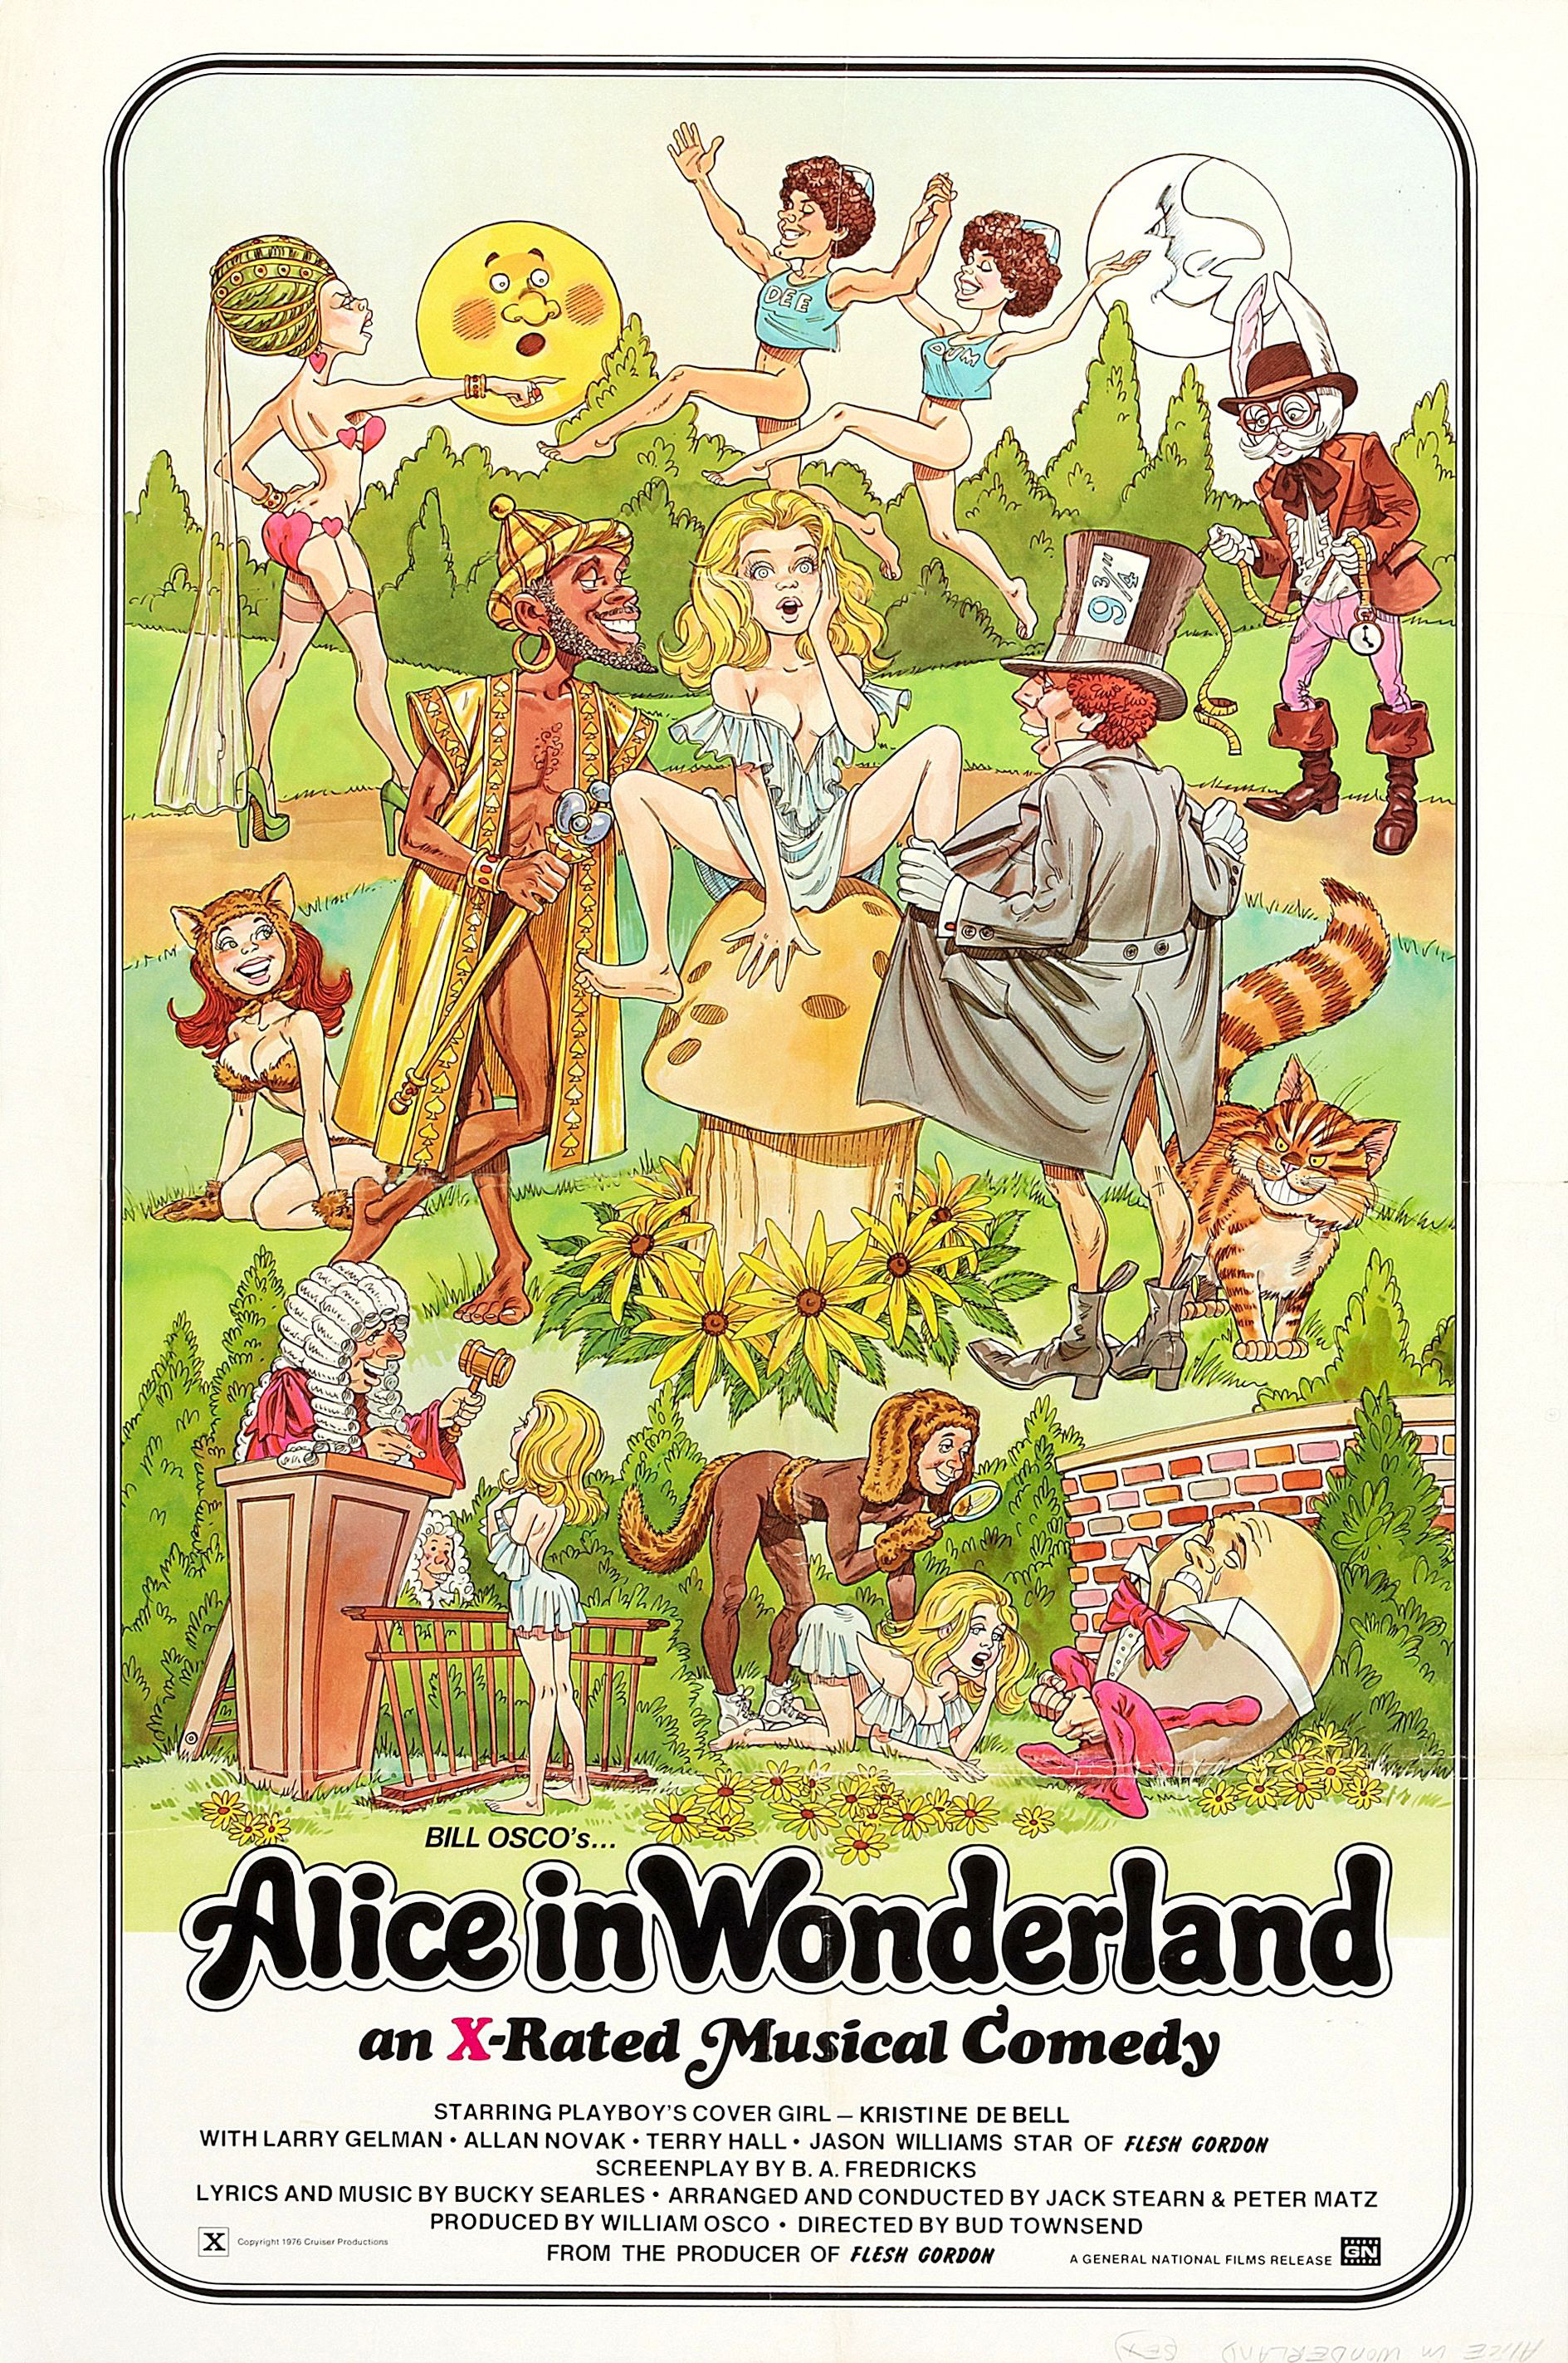 tn-newf-alice_in_wonderland_a_x_rated_musical_fantasy